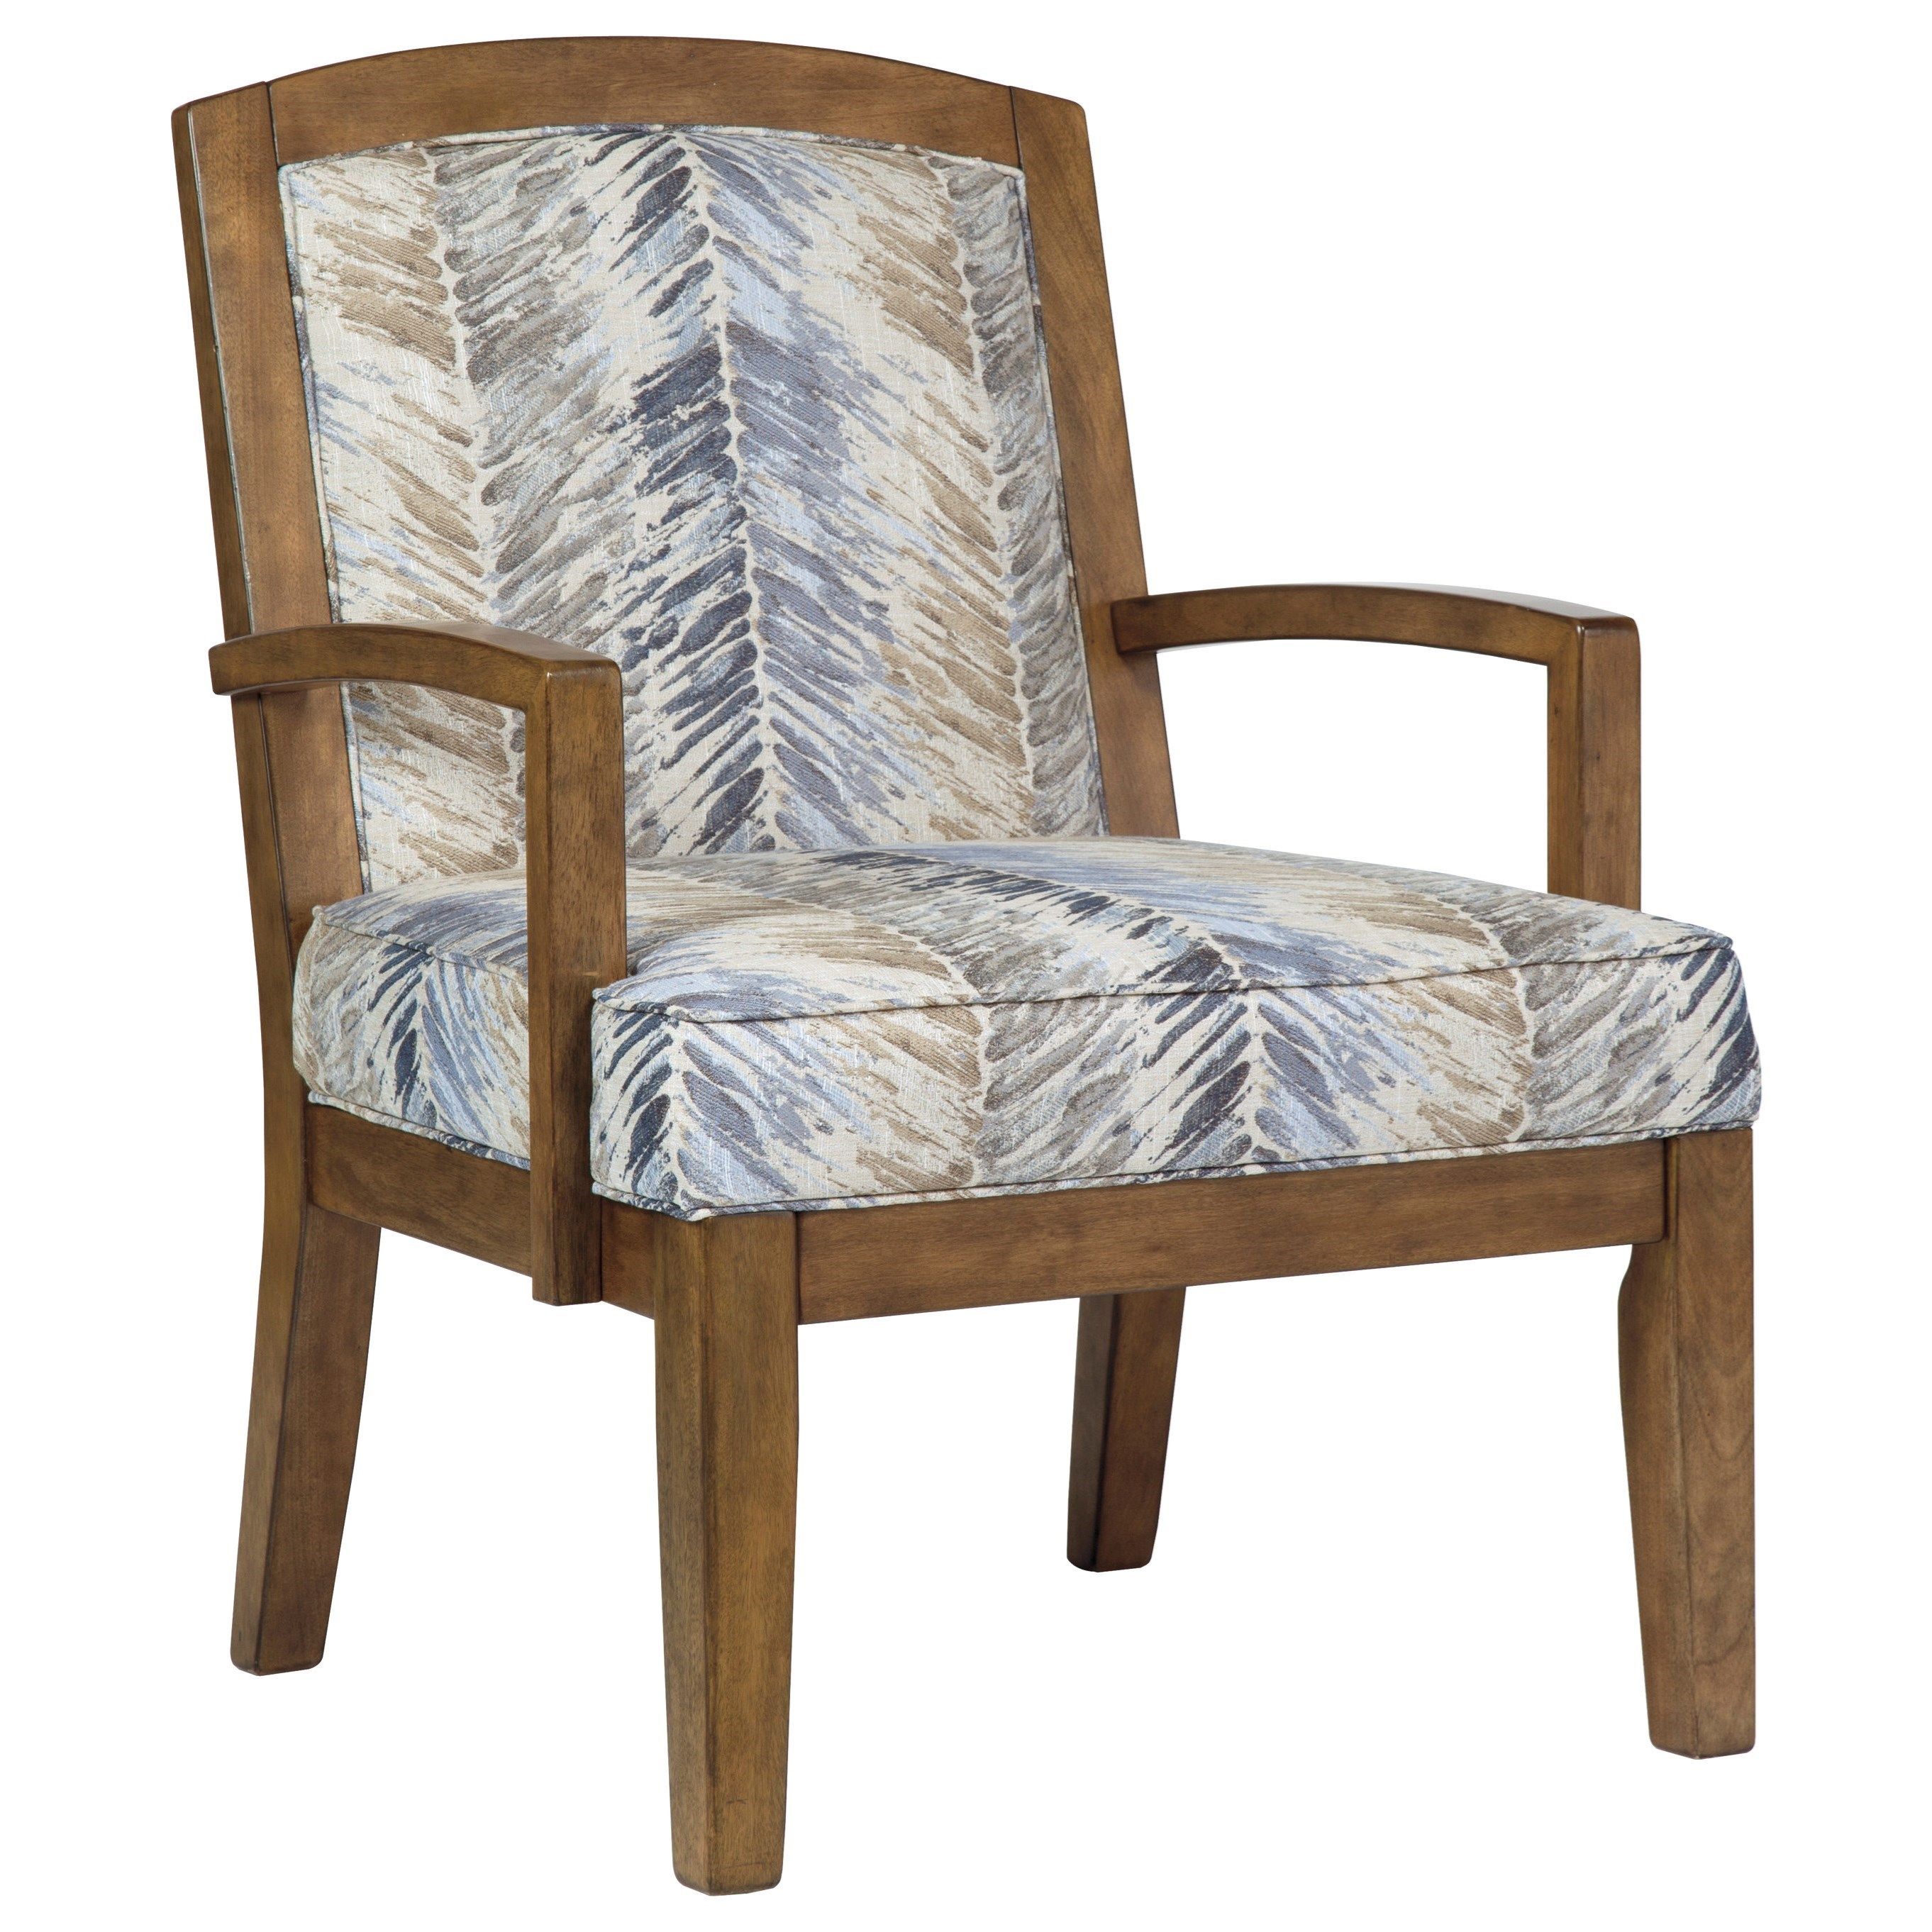 Benchcraft Hillsway Accent Chair - Item Number: 3410460